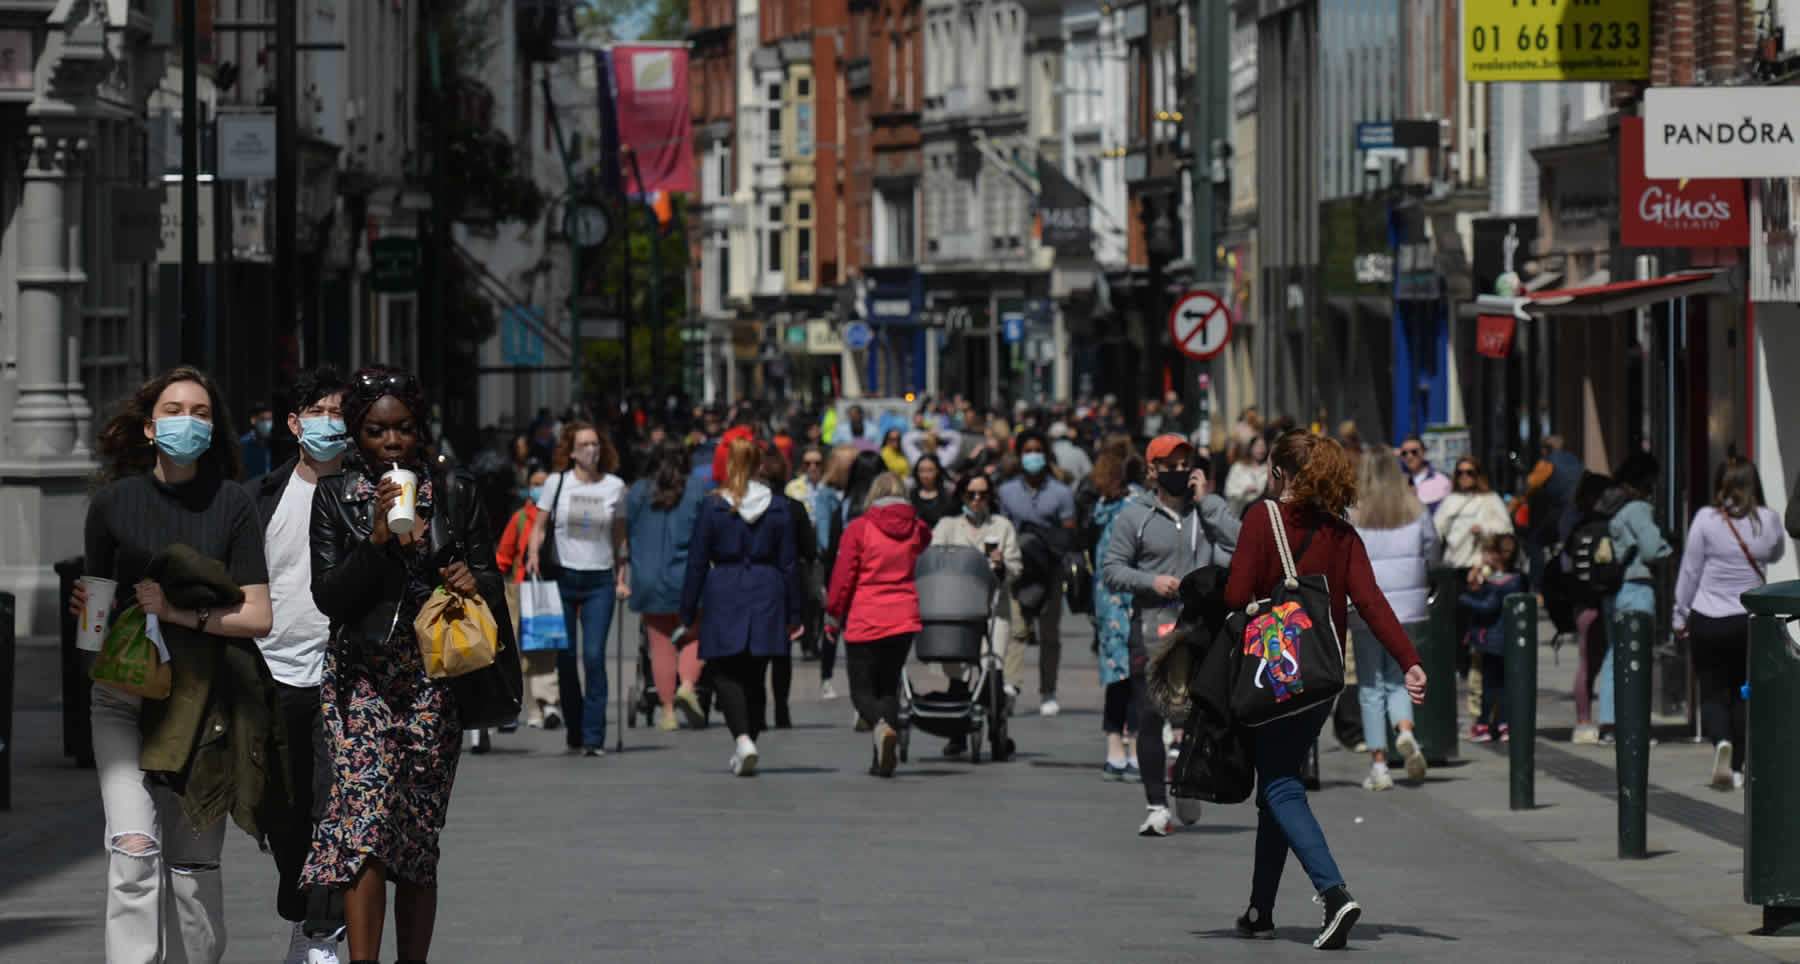 Ireland Will Welcome American Tourists Starting July 19